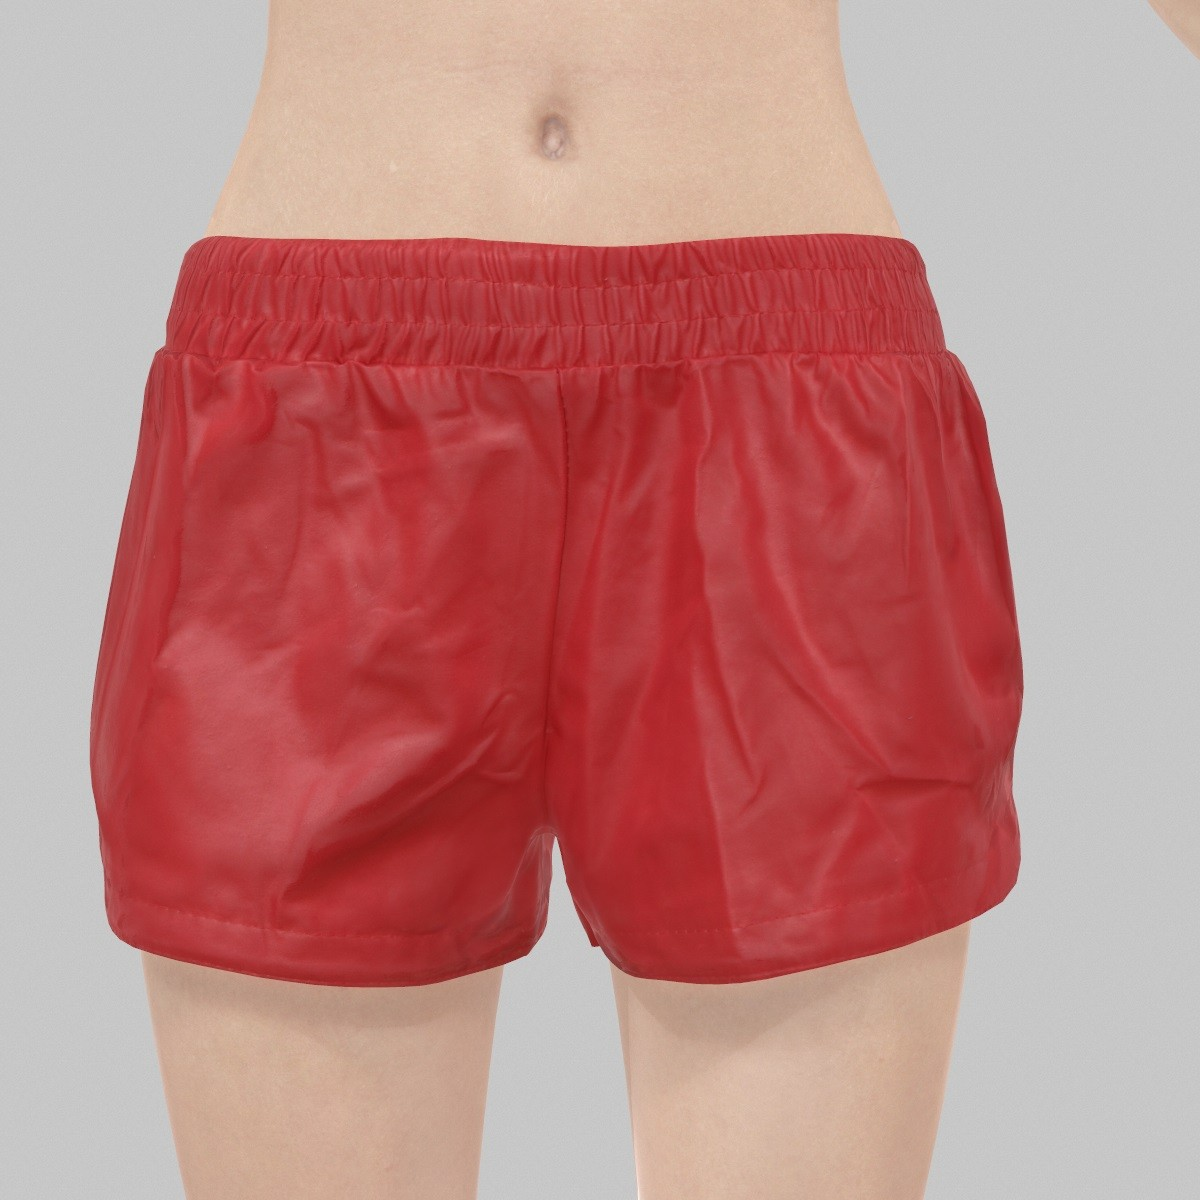 Red Leather Short_3D_Model_Virtual_Fashion_Avatar_Clothing_Girl_Woman_089.jpg